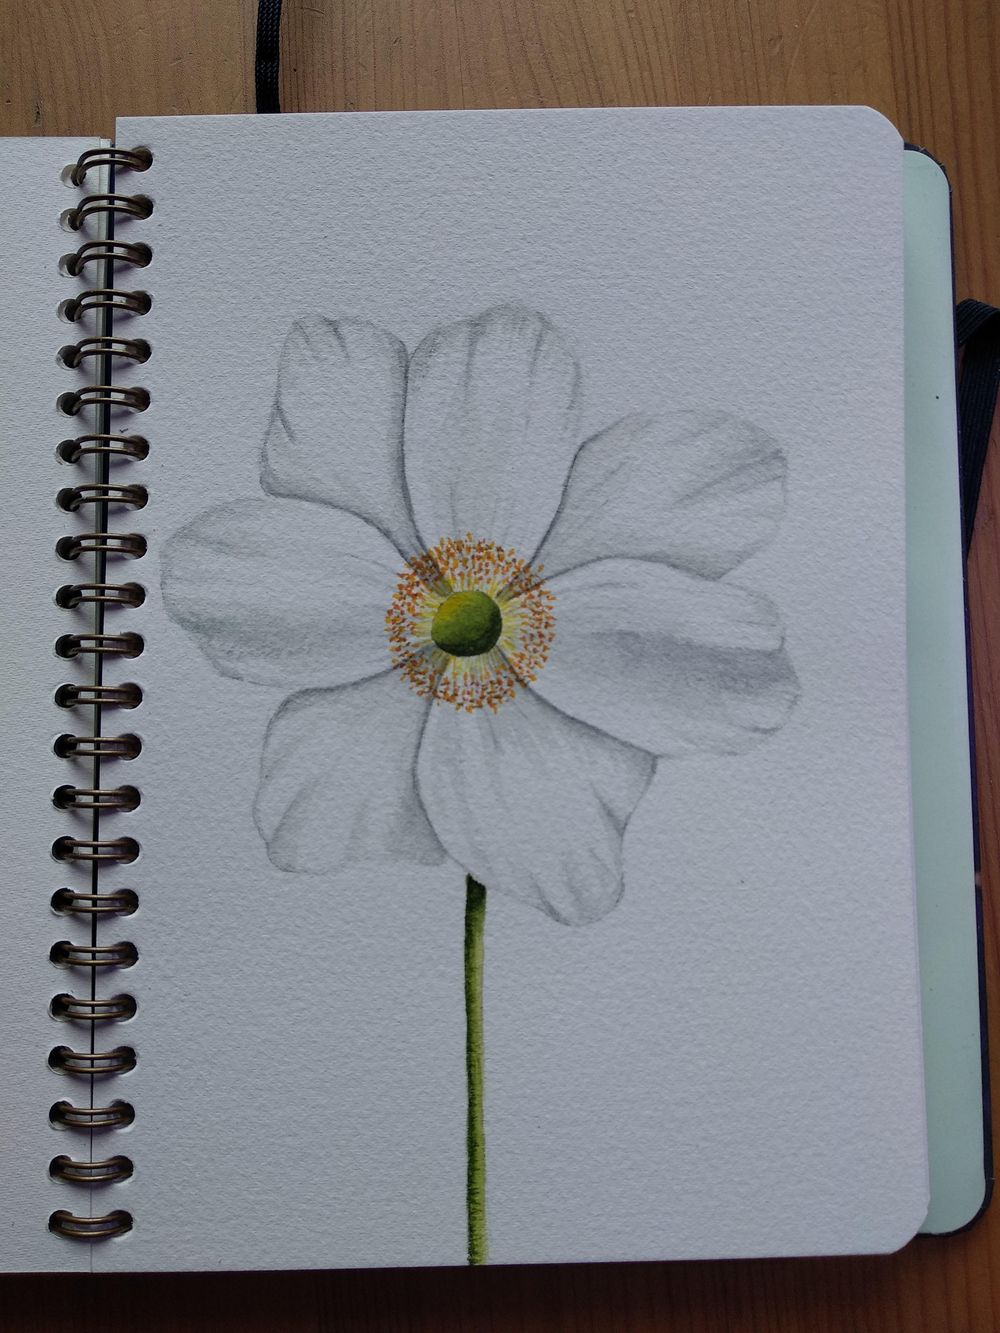 White flowers - image 2 - student project